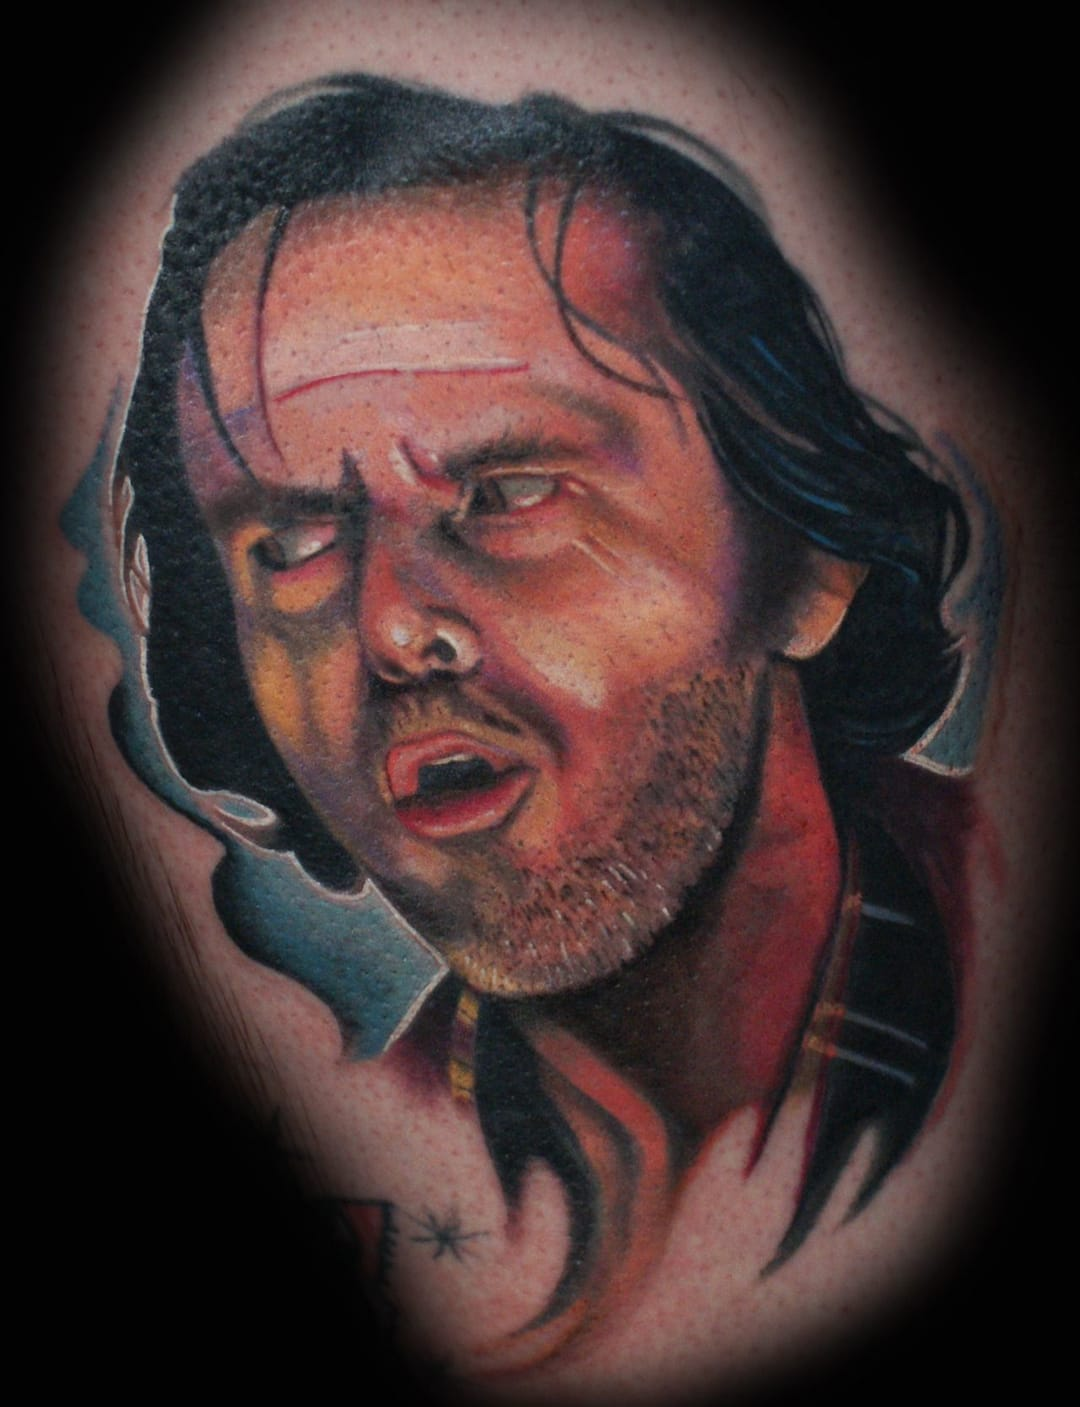 All work and no play makes Jack a dull boy ... by Krystof of Club Tattoo, Las Vegas.